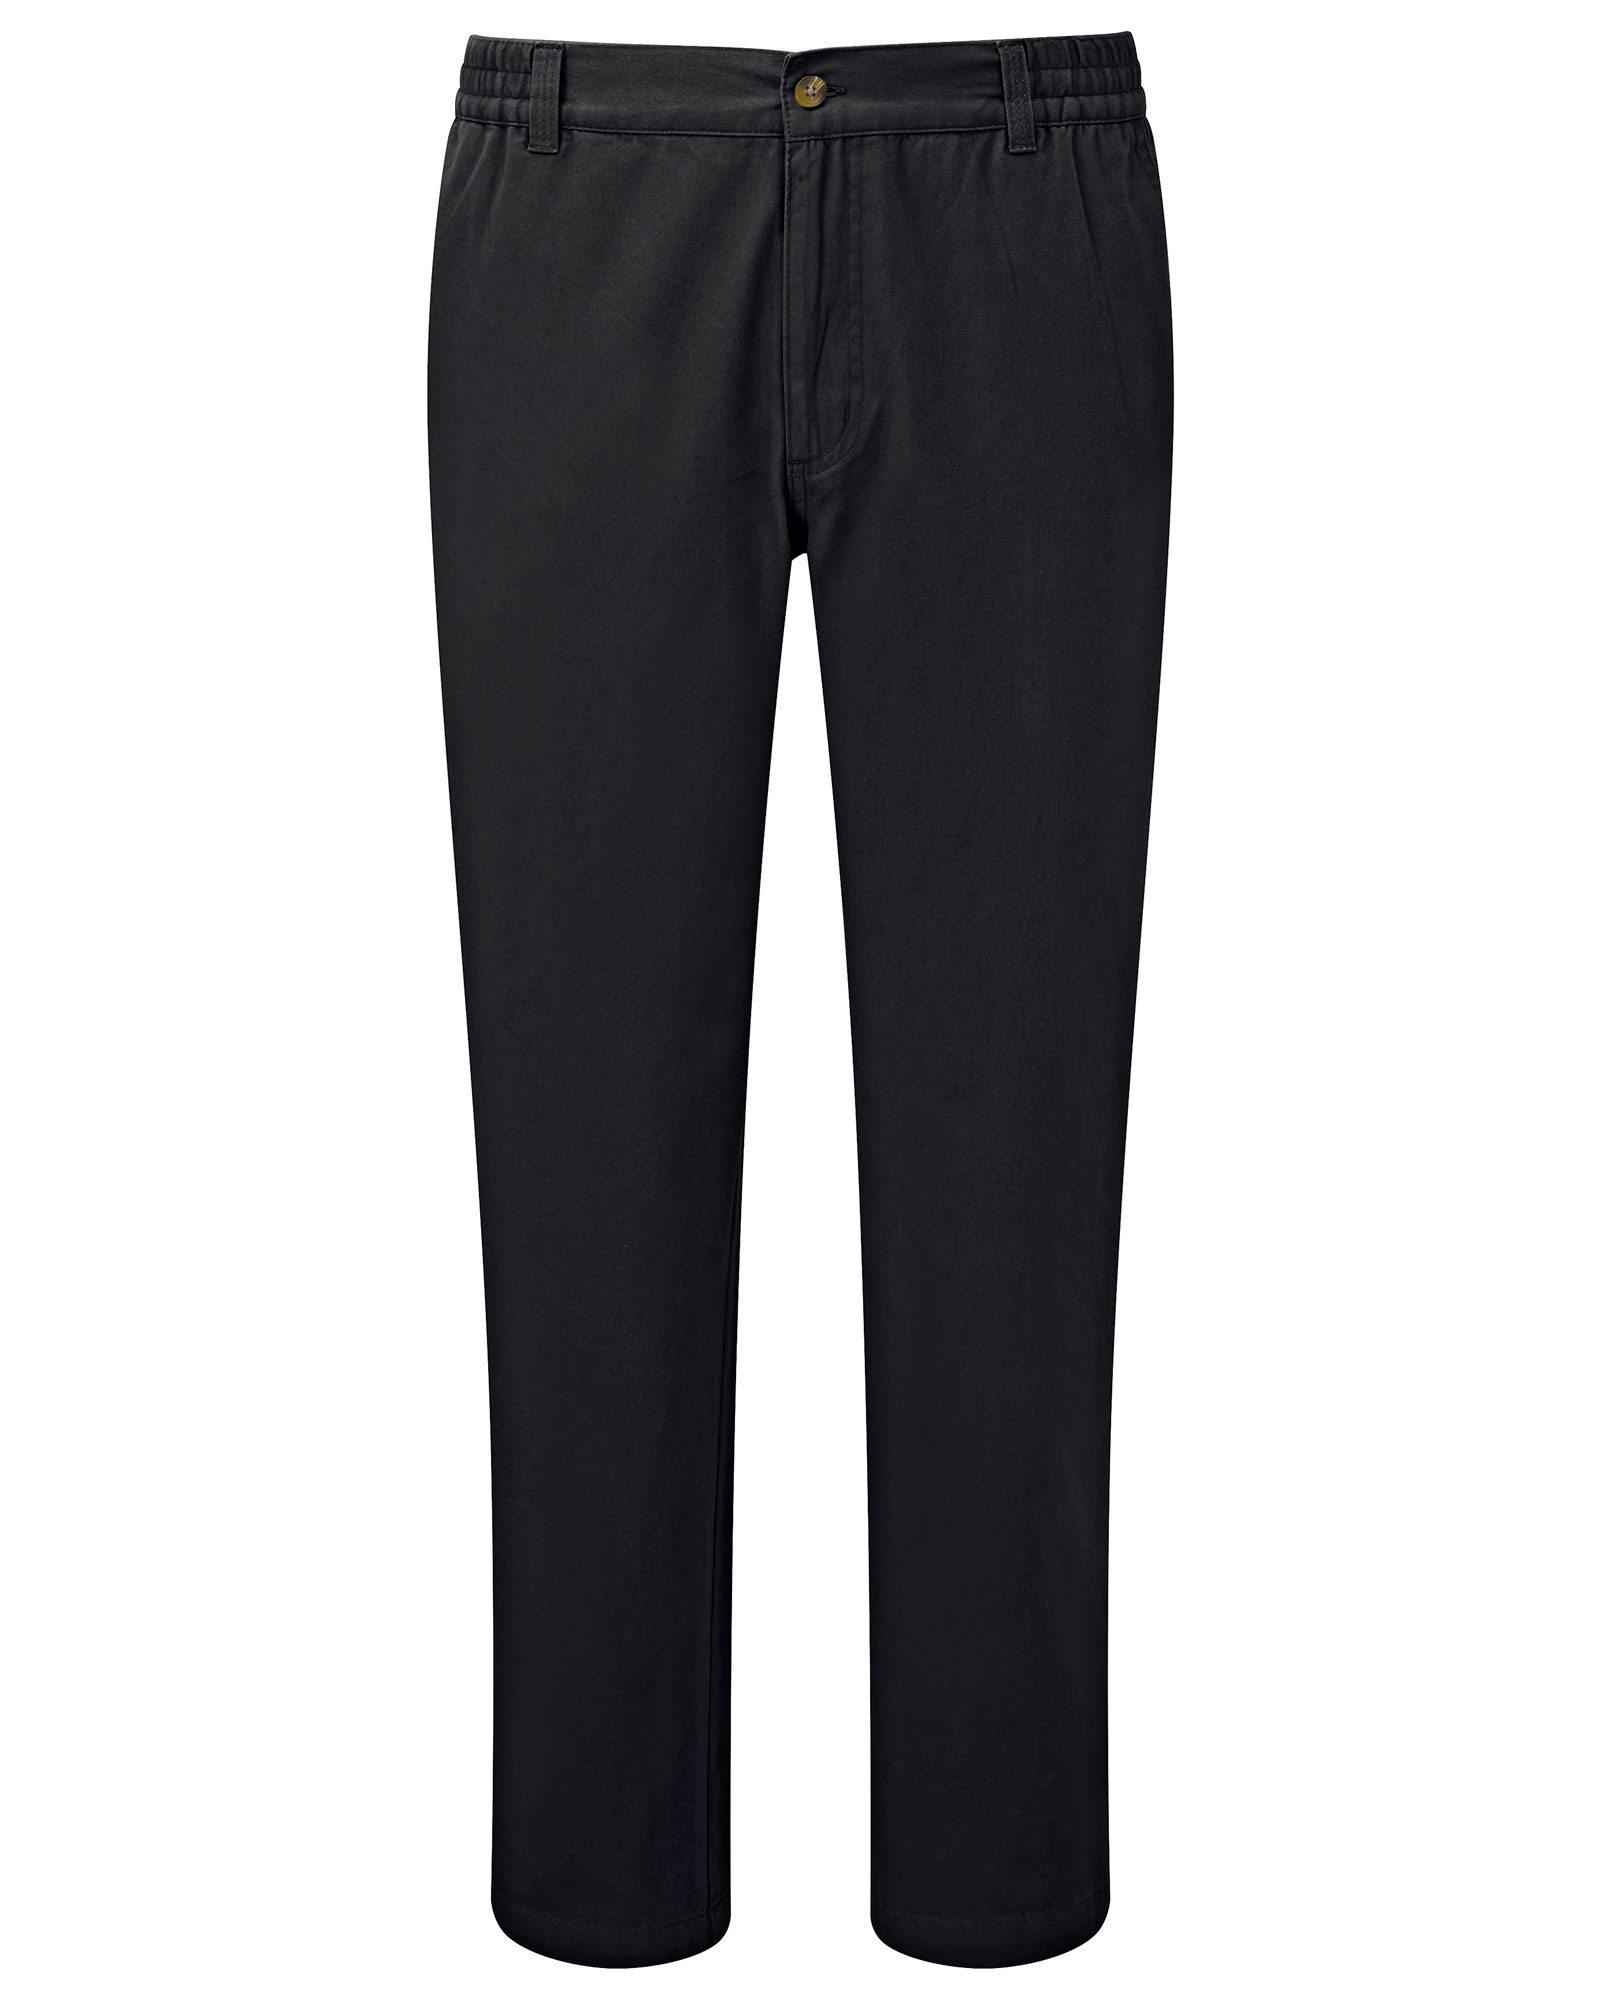 Cotton Traders Men's Flat Front Comfort Trousers in Black